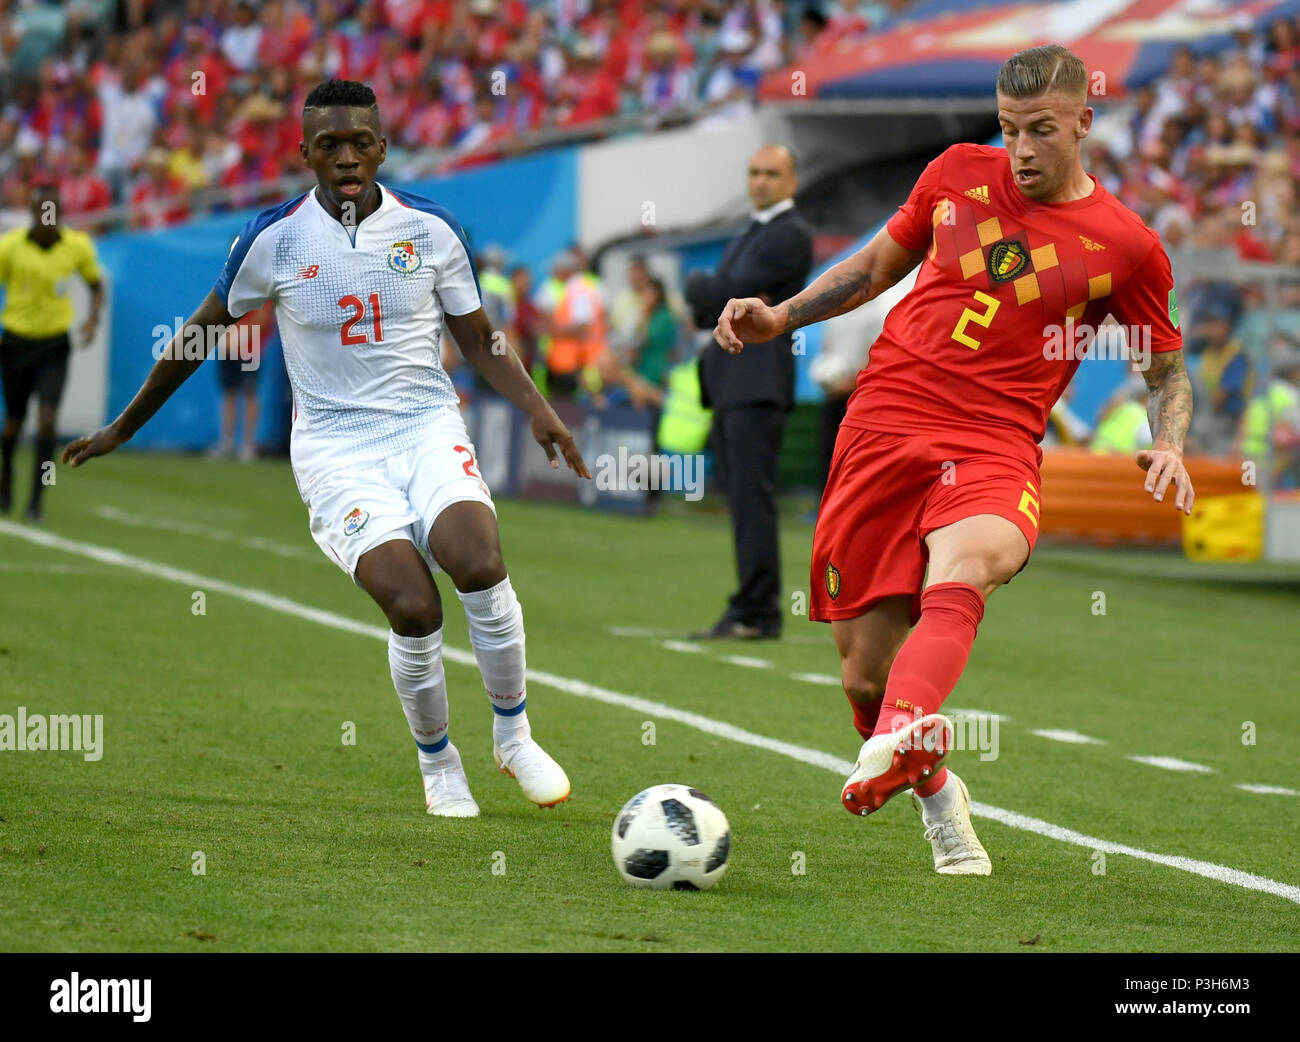 Toby Alderweireld (R) of Belgium vies with Jose Luis Rodriguez of Panama  during a group G match between Belgium and Panama at the 2018 FIFA World  Cup ... 8991a1ce3f9fd